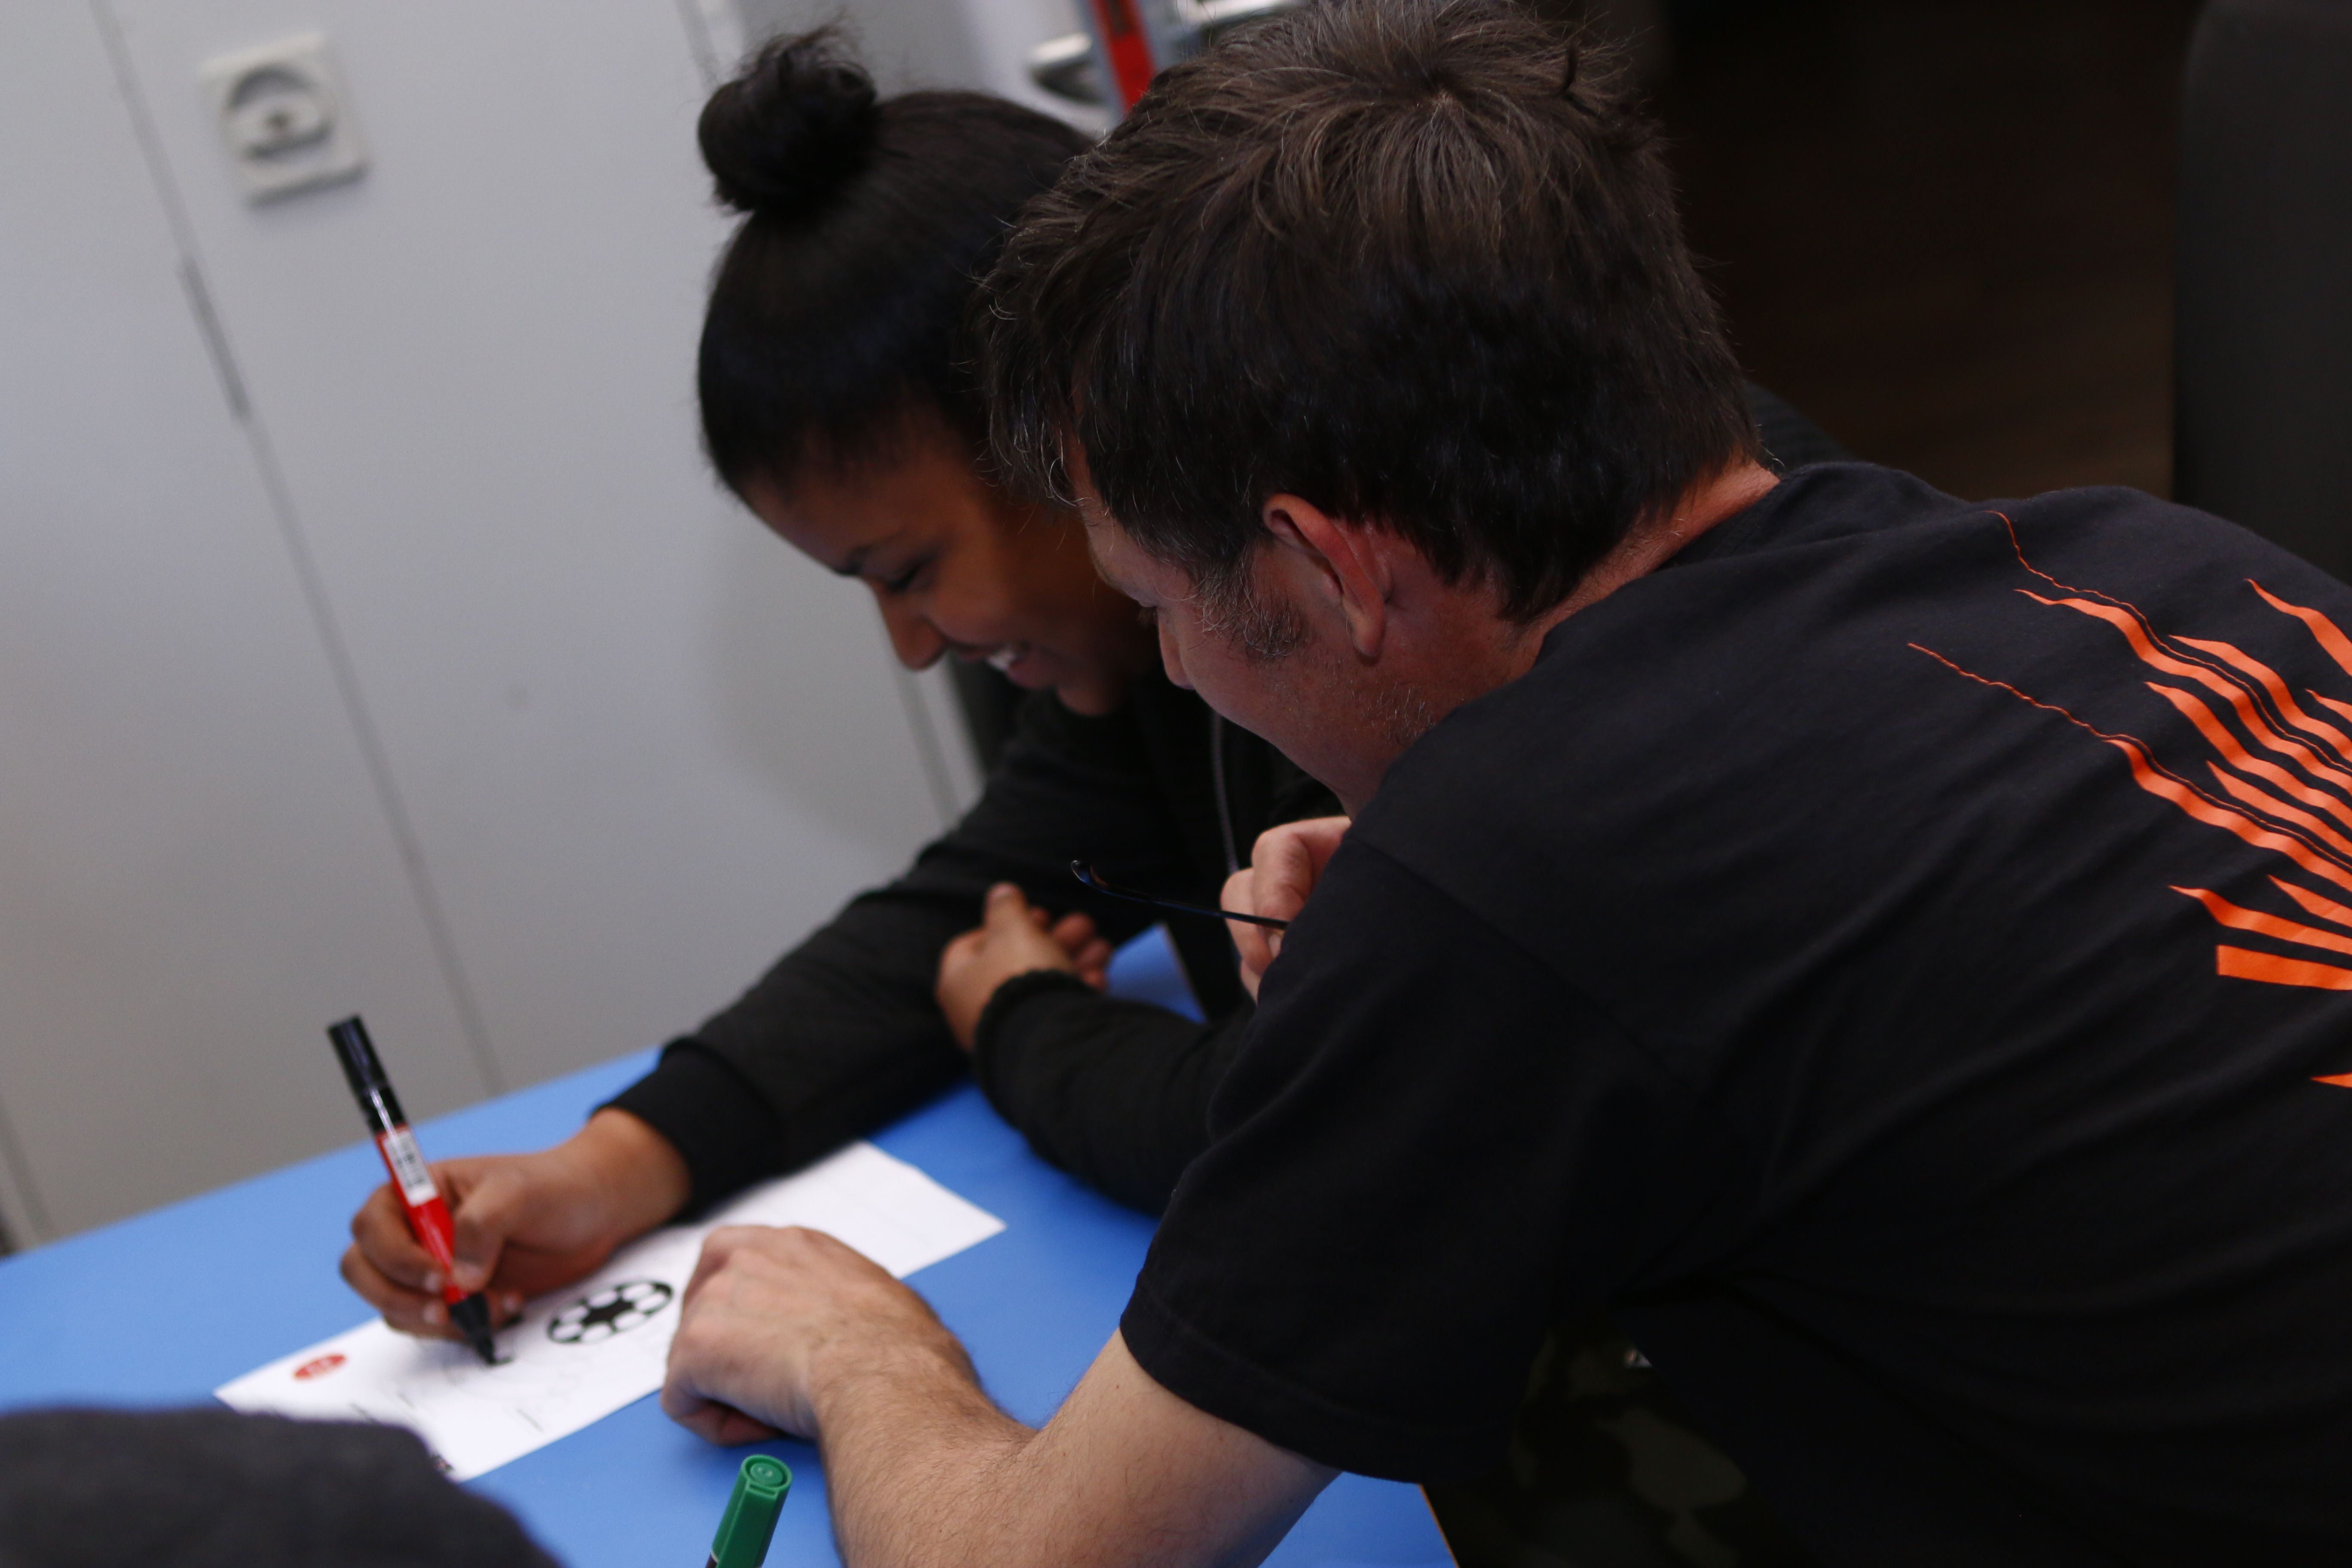 A member of staff helps a young woman to fill in paperwork